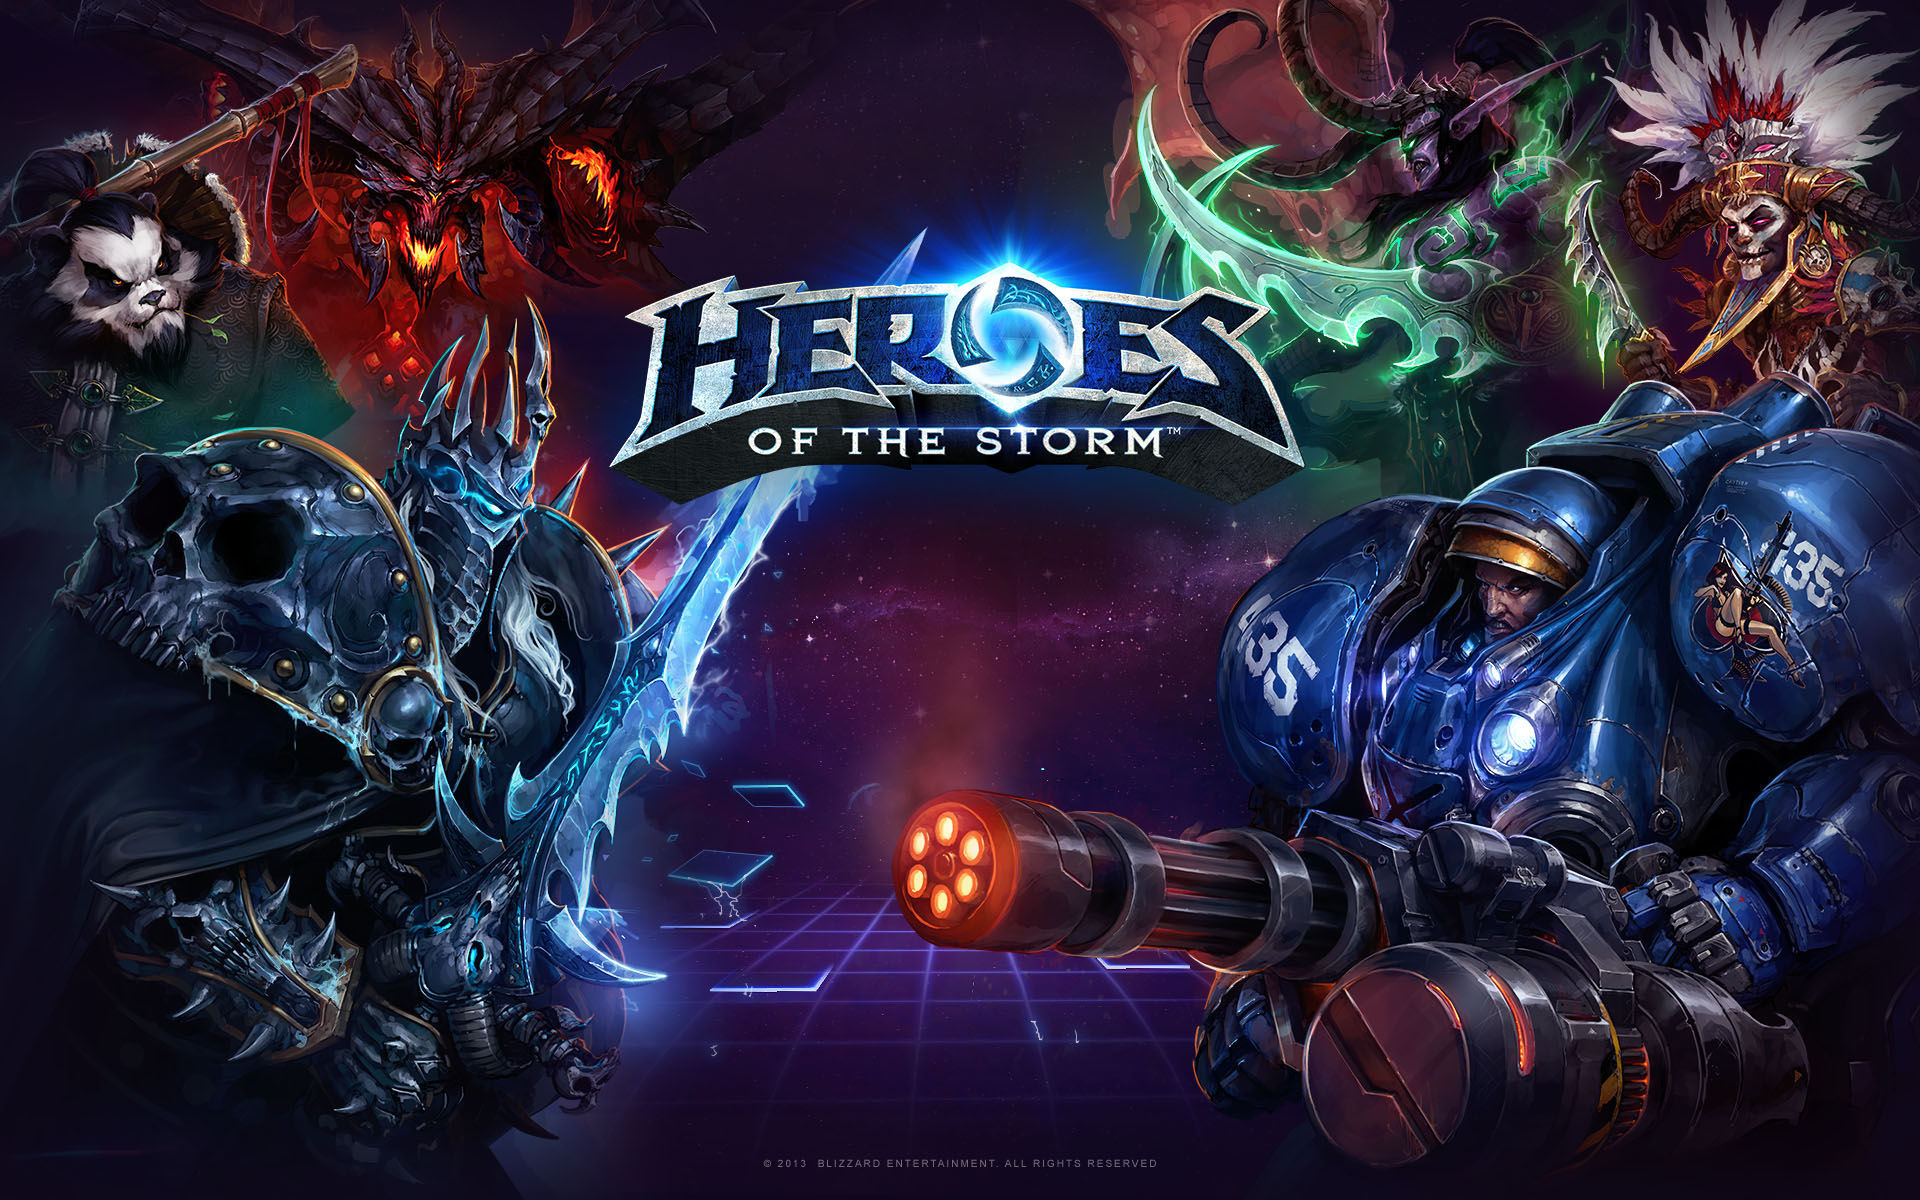 8304 - Heroes of the Storm, ¿te consideras un experto?